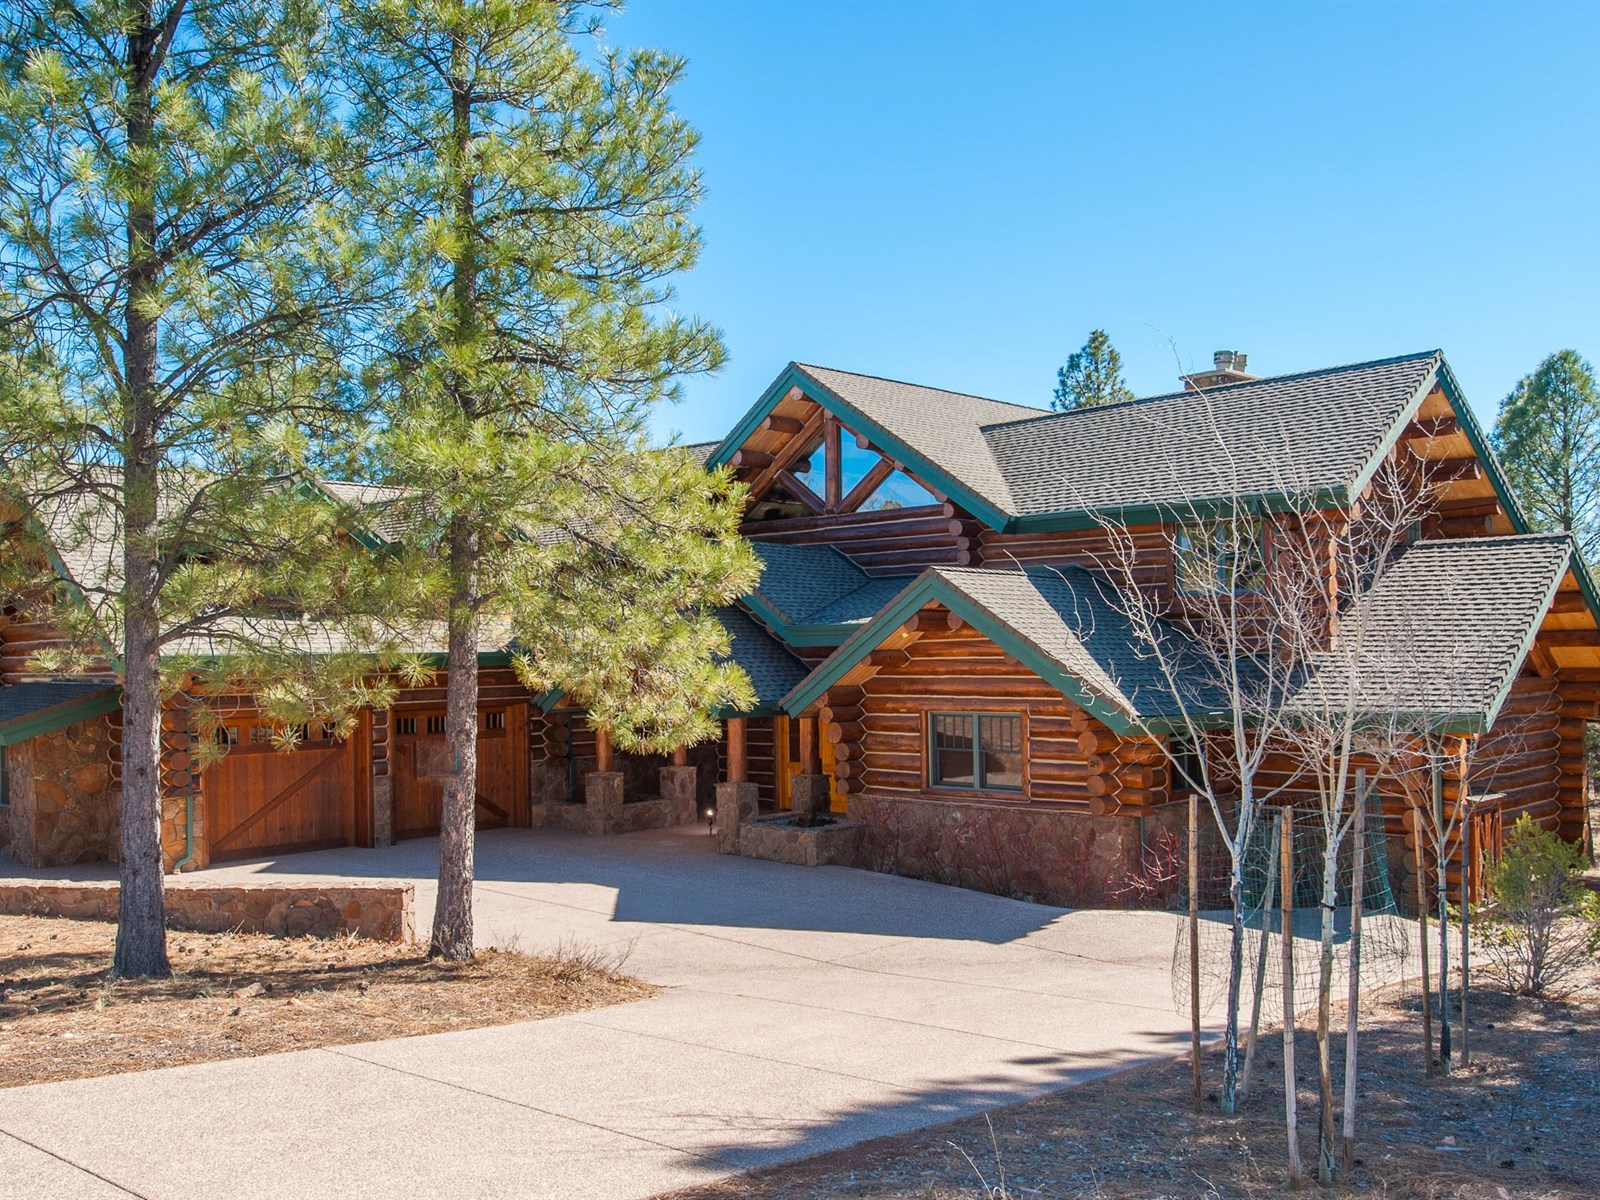 Single Family Home for Sale at Luxurious Hand Crafted Log Home 3609 S Clubhouse CIR Flagstaff, Arizona 86005 United States